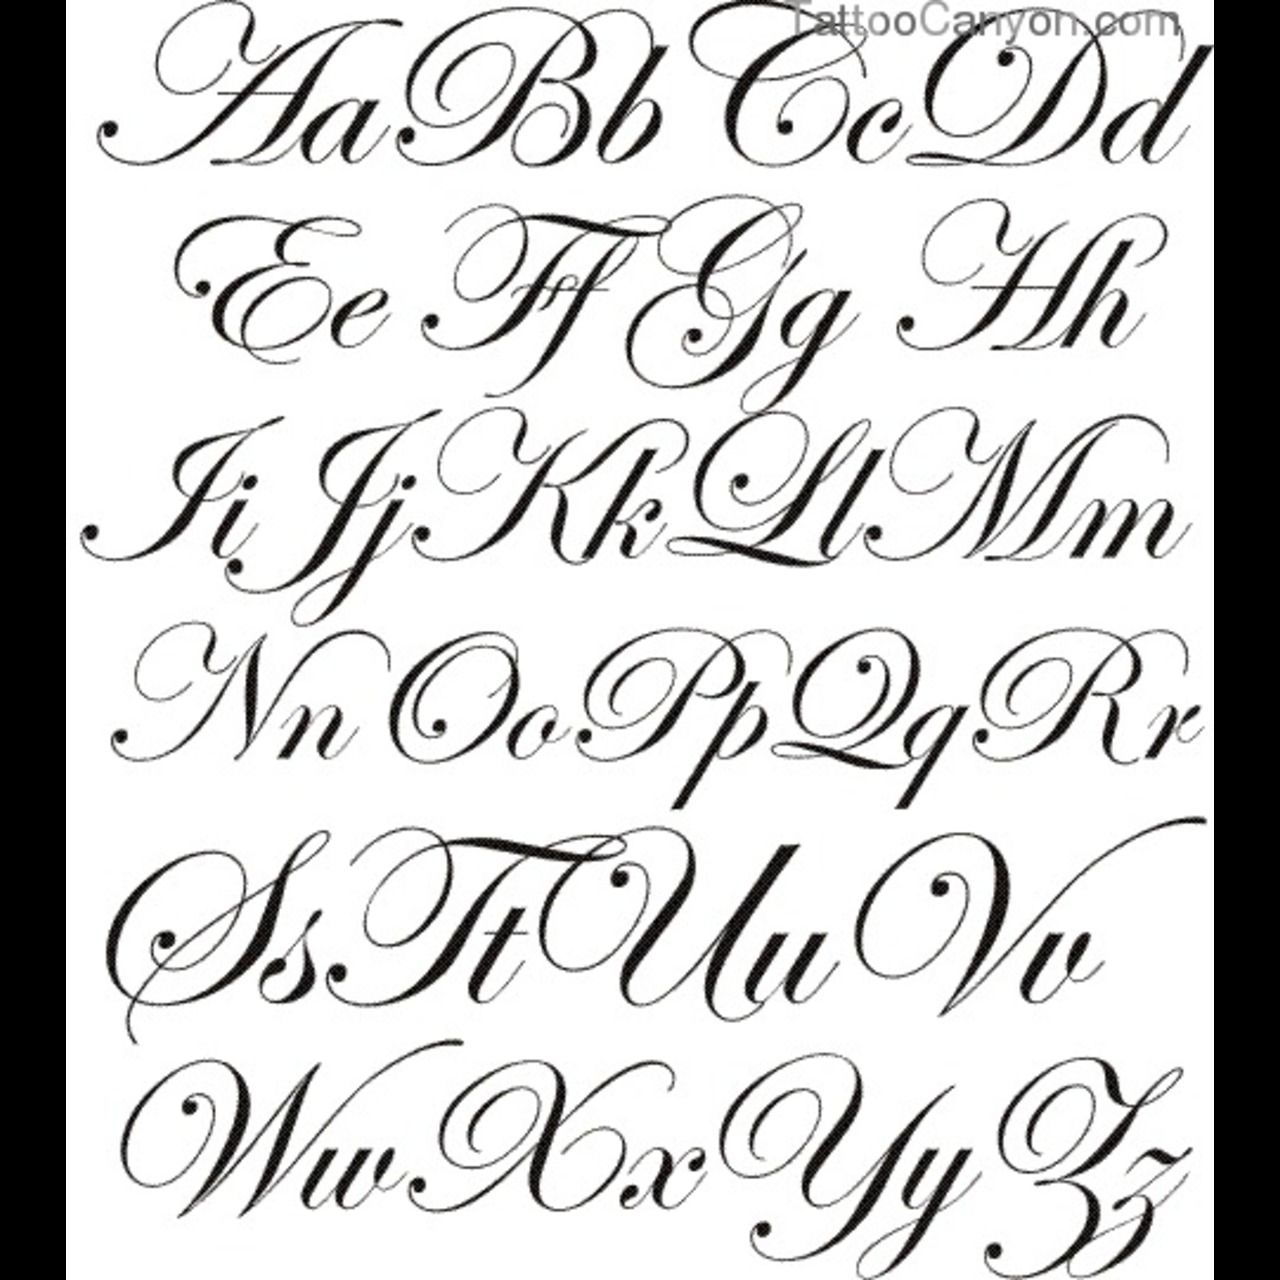 Calligraphy Tattoo Fonts 219 More Calligraphy Tattoo